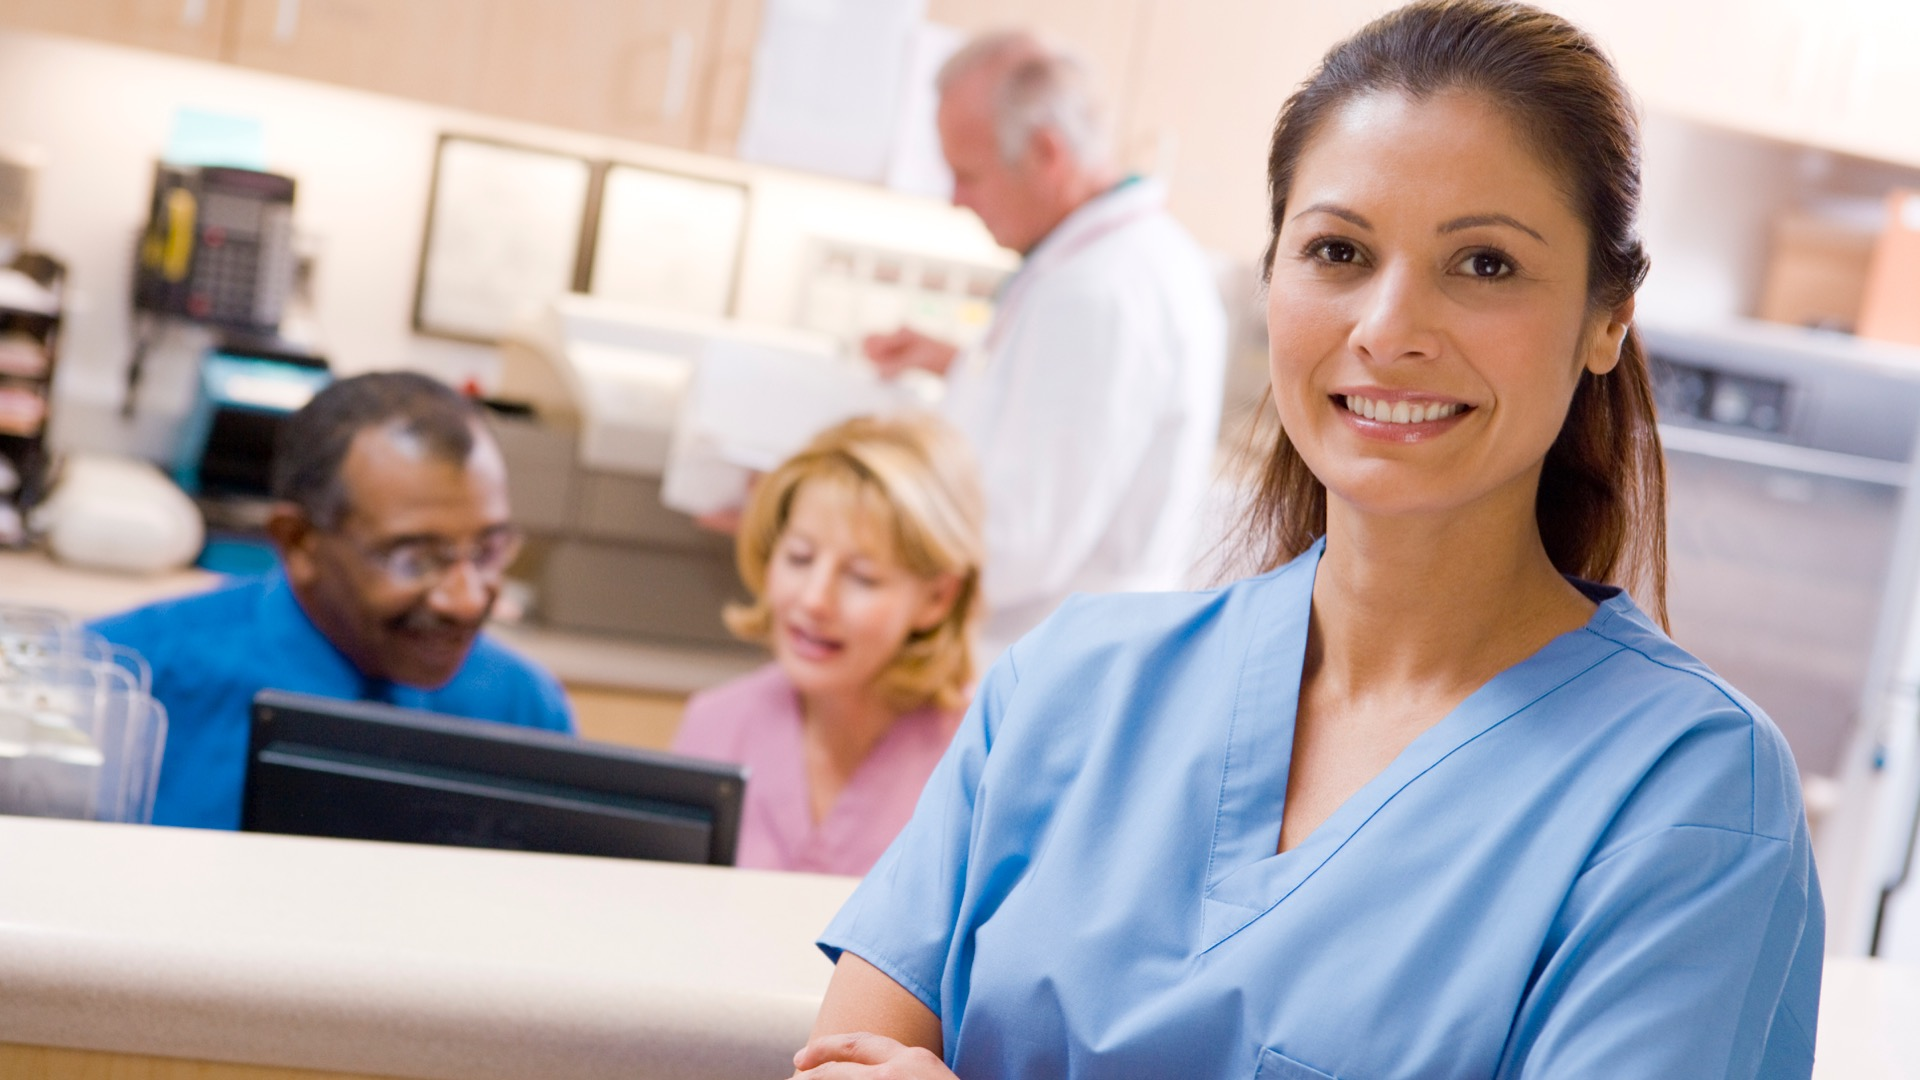 thinkstock-179276917-female-hispanic-doctor-1920x1080.jpg